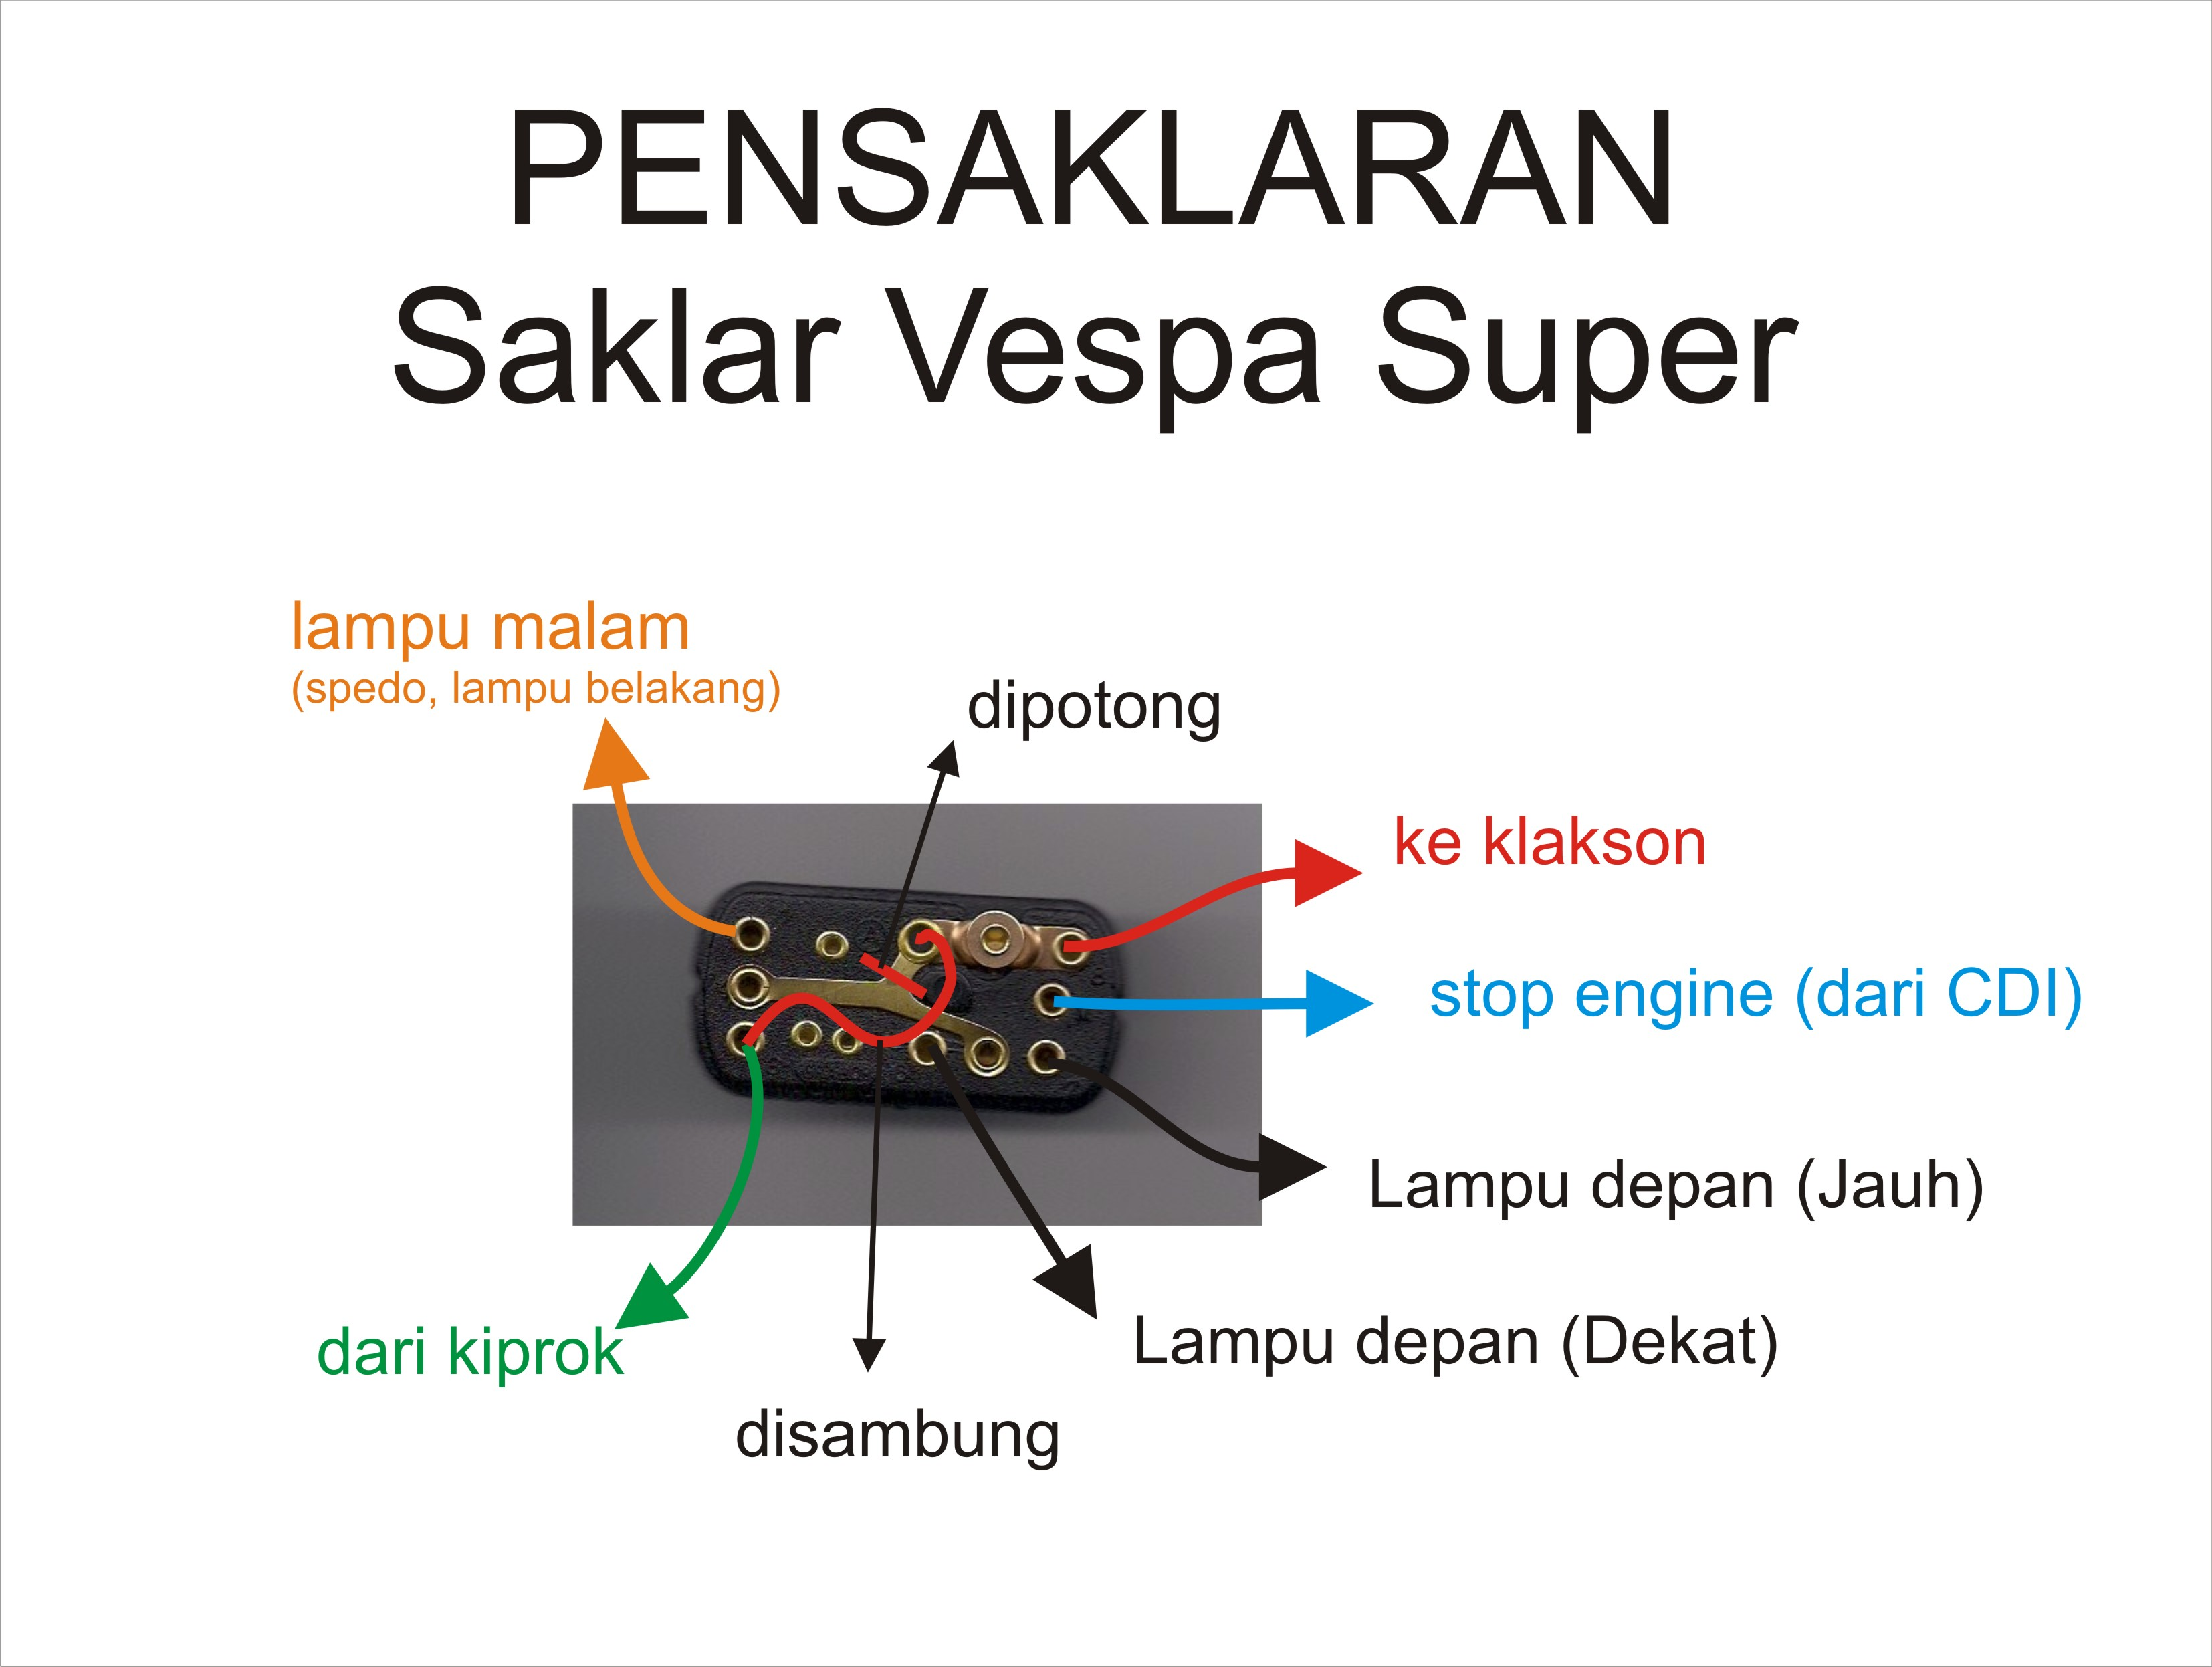 Wiring Diagram Vespa P150s Bookmark About Lampu Depan Skema Kelistrikan Px Sederhana Azli Zank Rh Azlizank Wordpress Com Chinese Electric Scooter Schematic